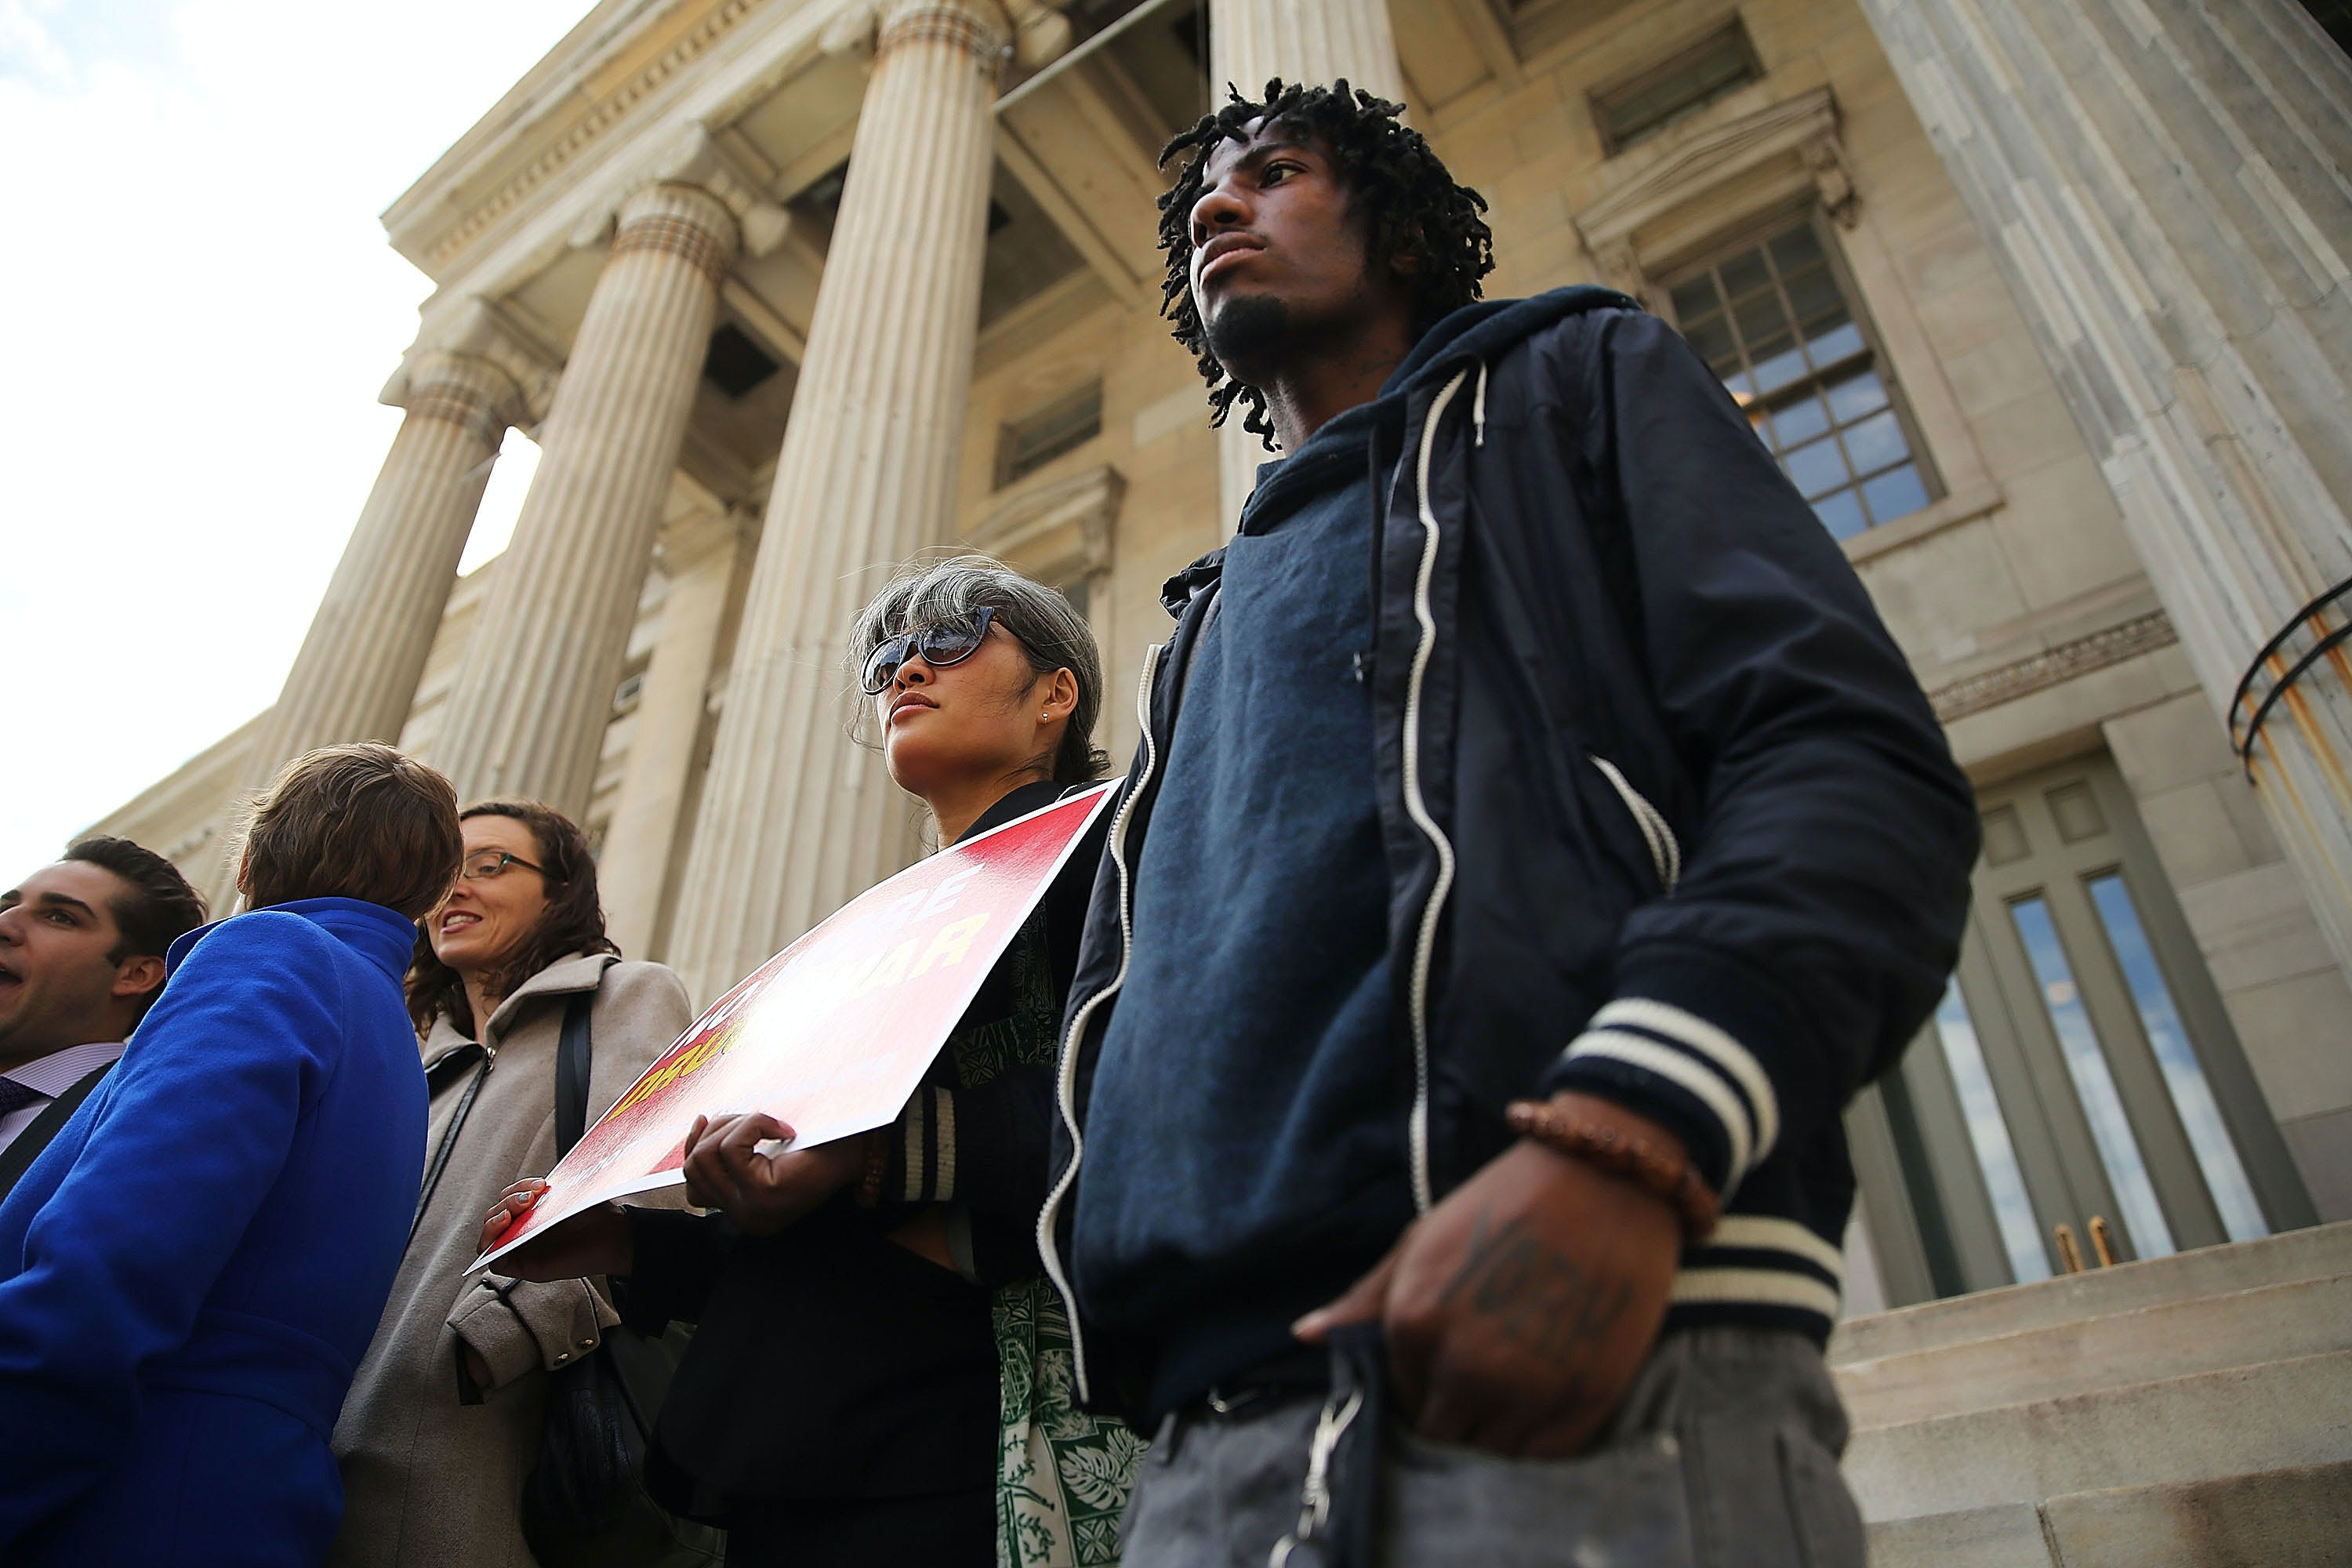 Brooklyn federal judge promises not to send people back to prison for smoking weed New Report Finds Minorities Make Up 90% of NYC Pot Arrests